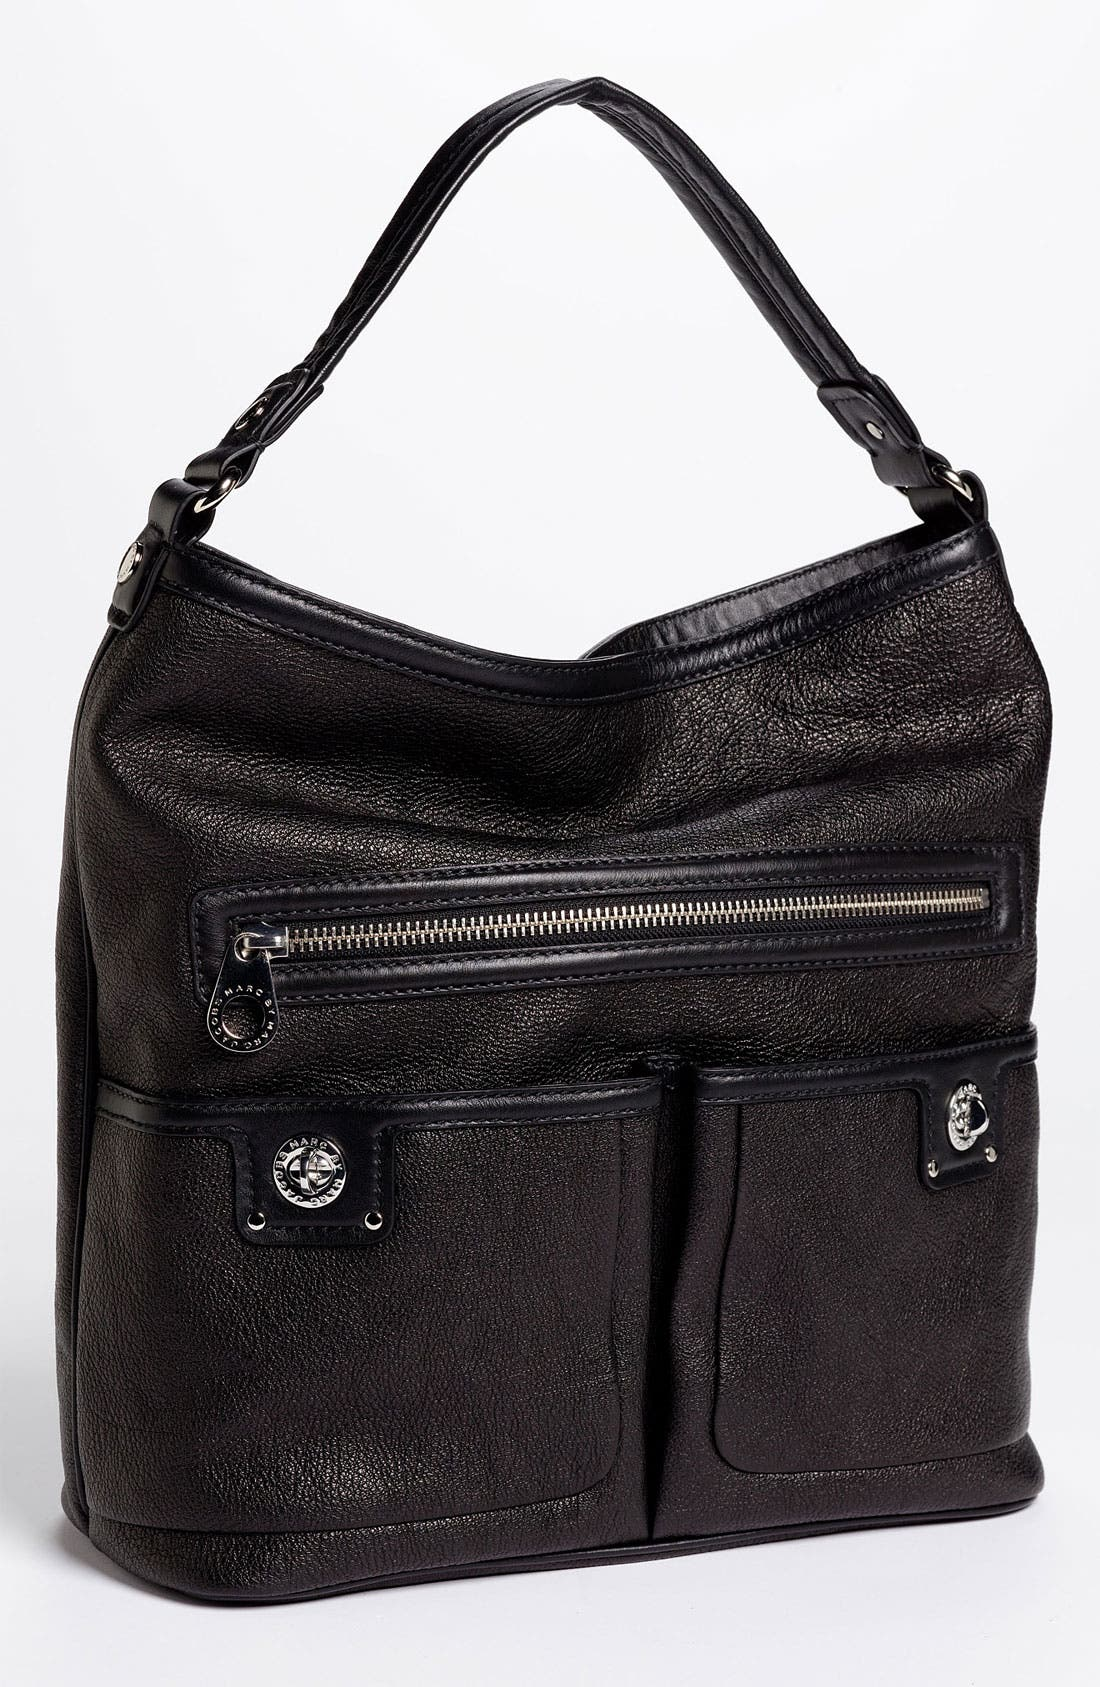 MARC JACOBS,                             MARC BY MARC JACOBS 'Totally Turnlock - Faridah' Hobo,                             Main thumbnail 1, color,                             001